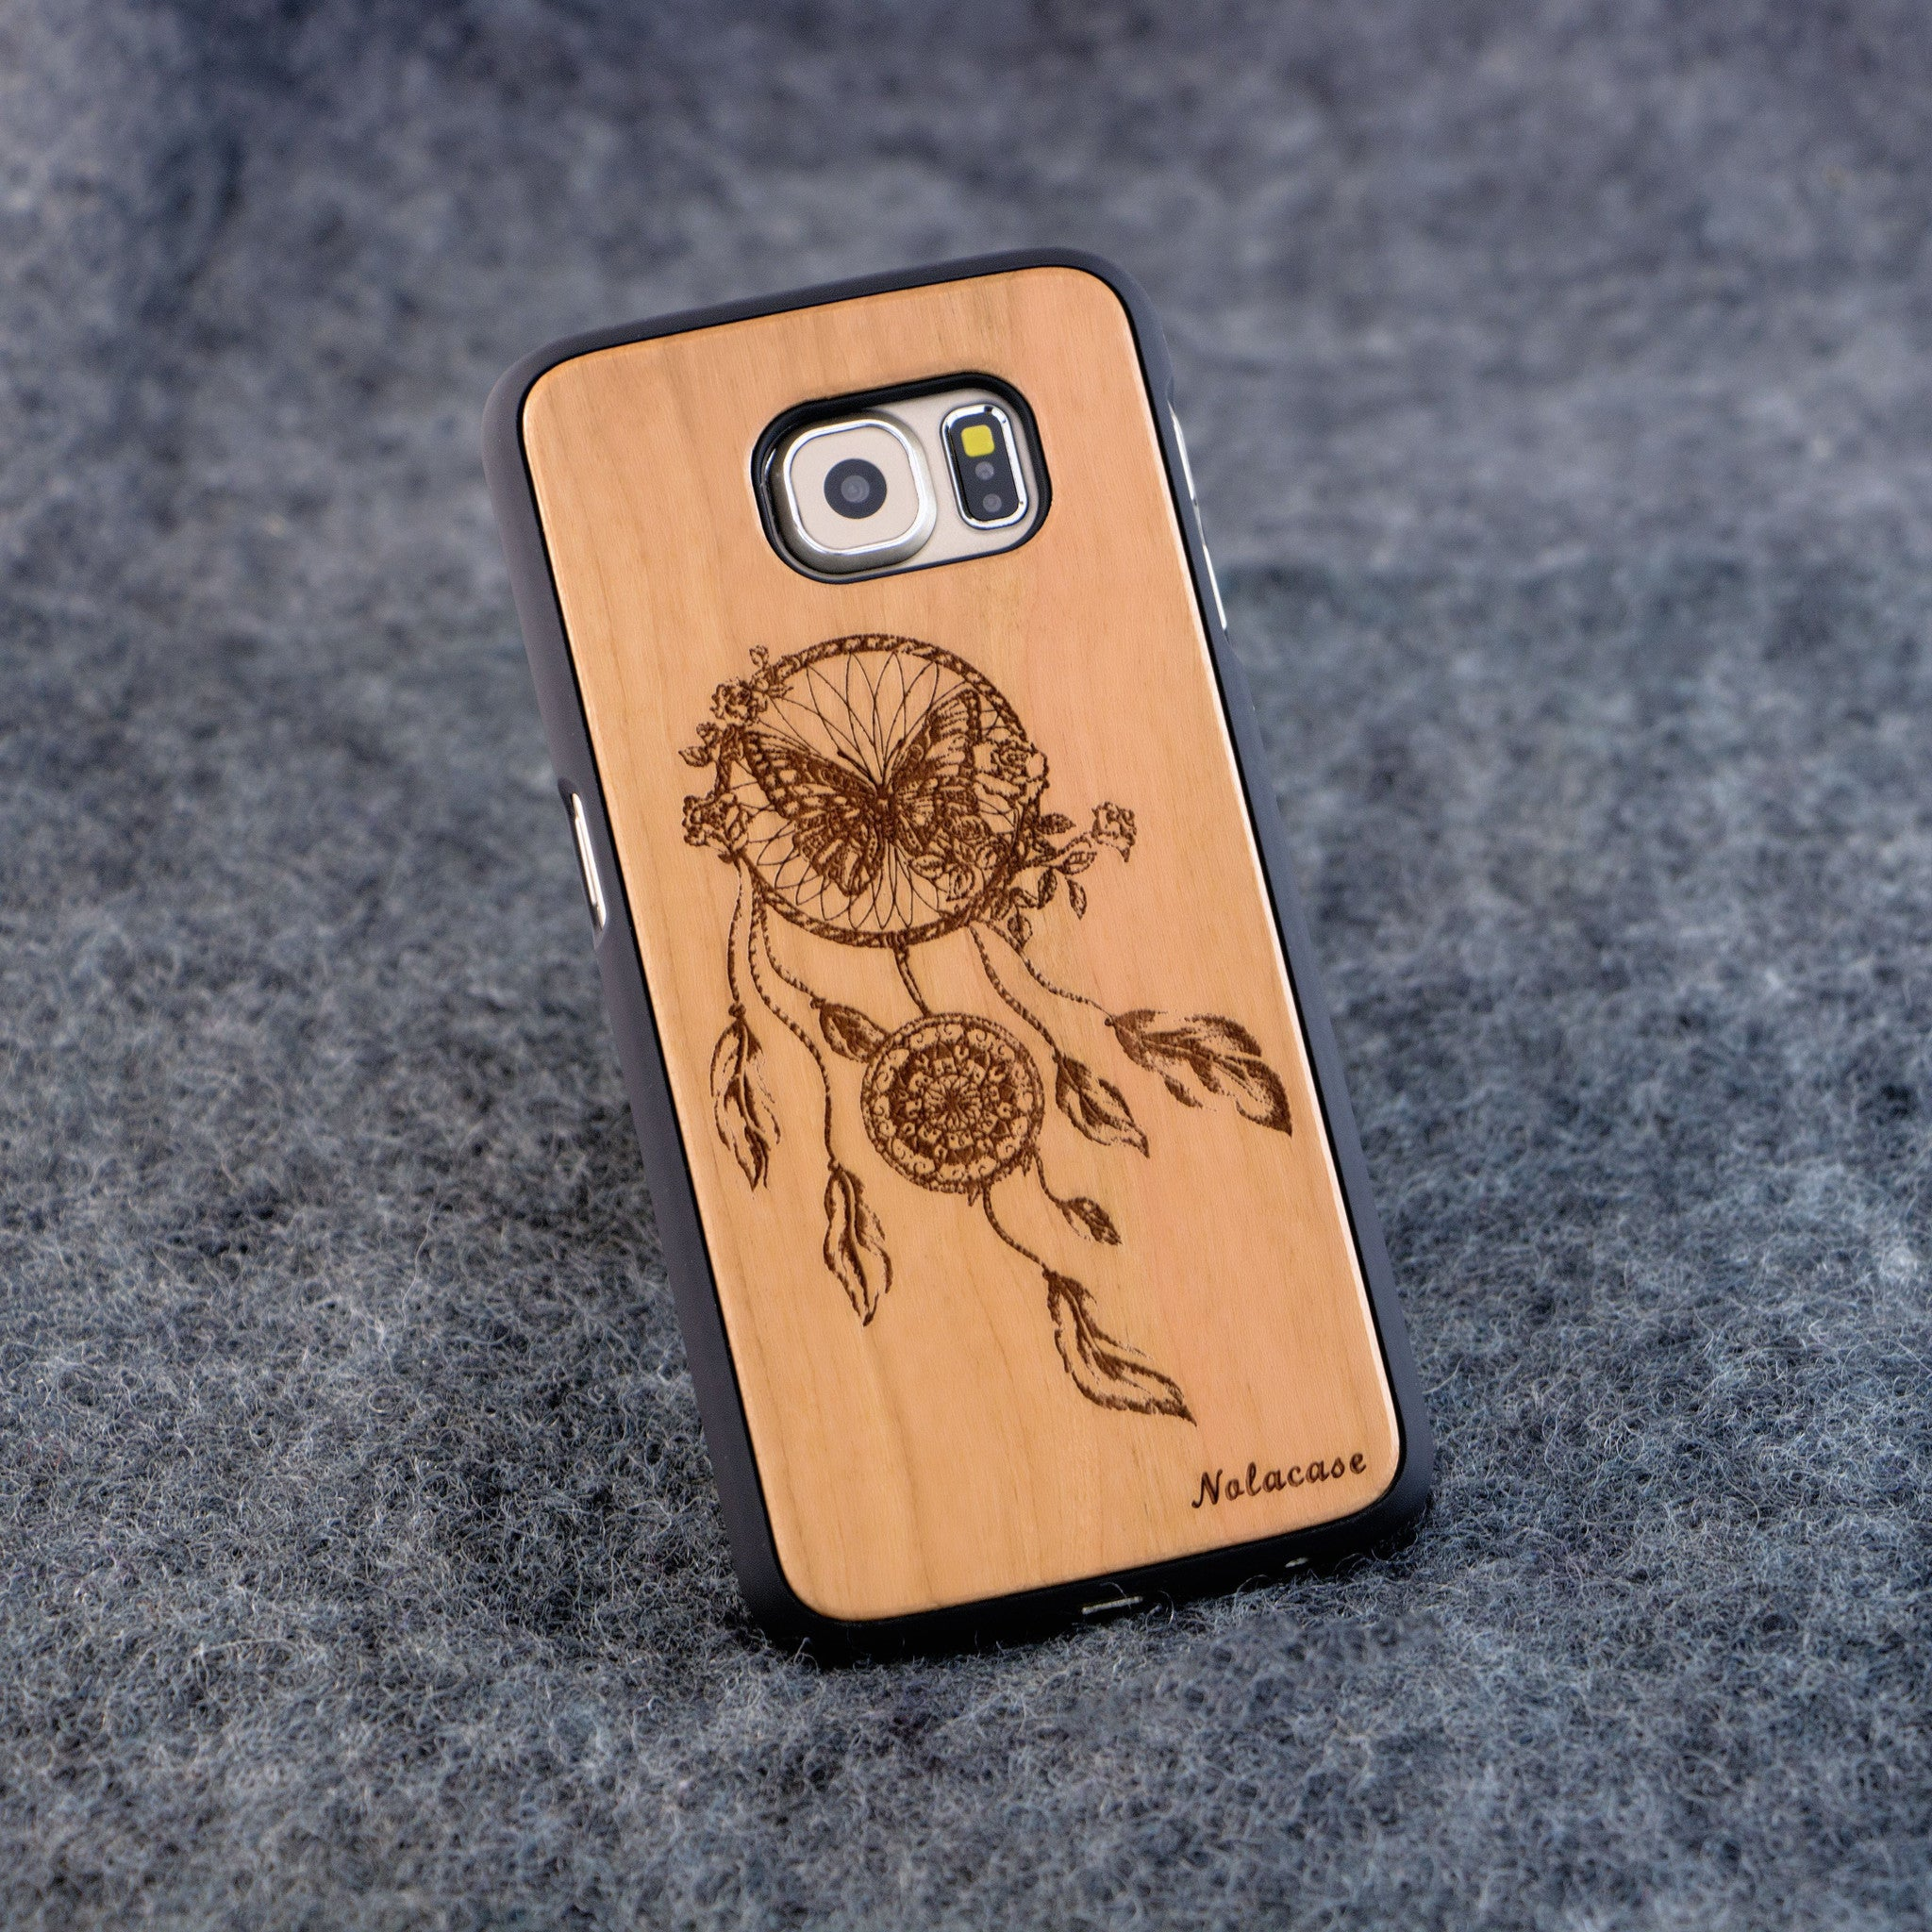 Samsung S6 Dream Catcher with Butterfly Slim Wood Case - NOLACASE